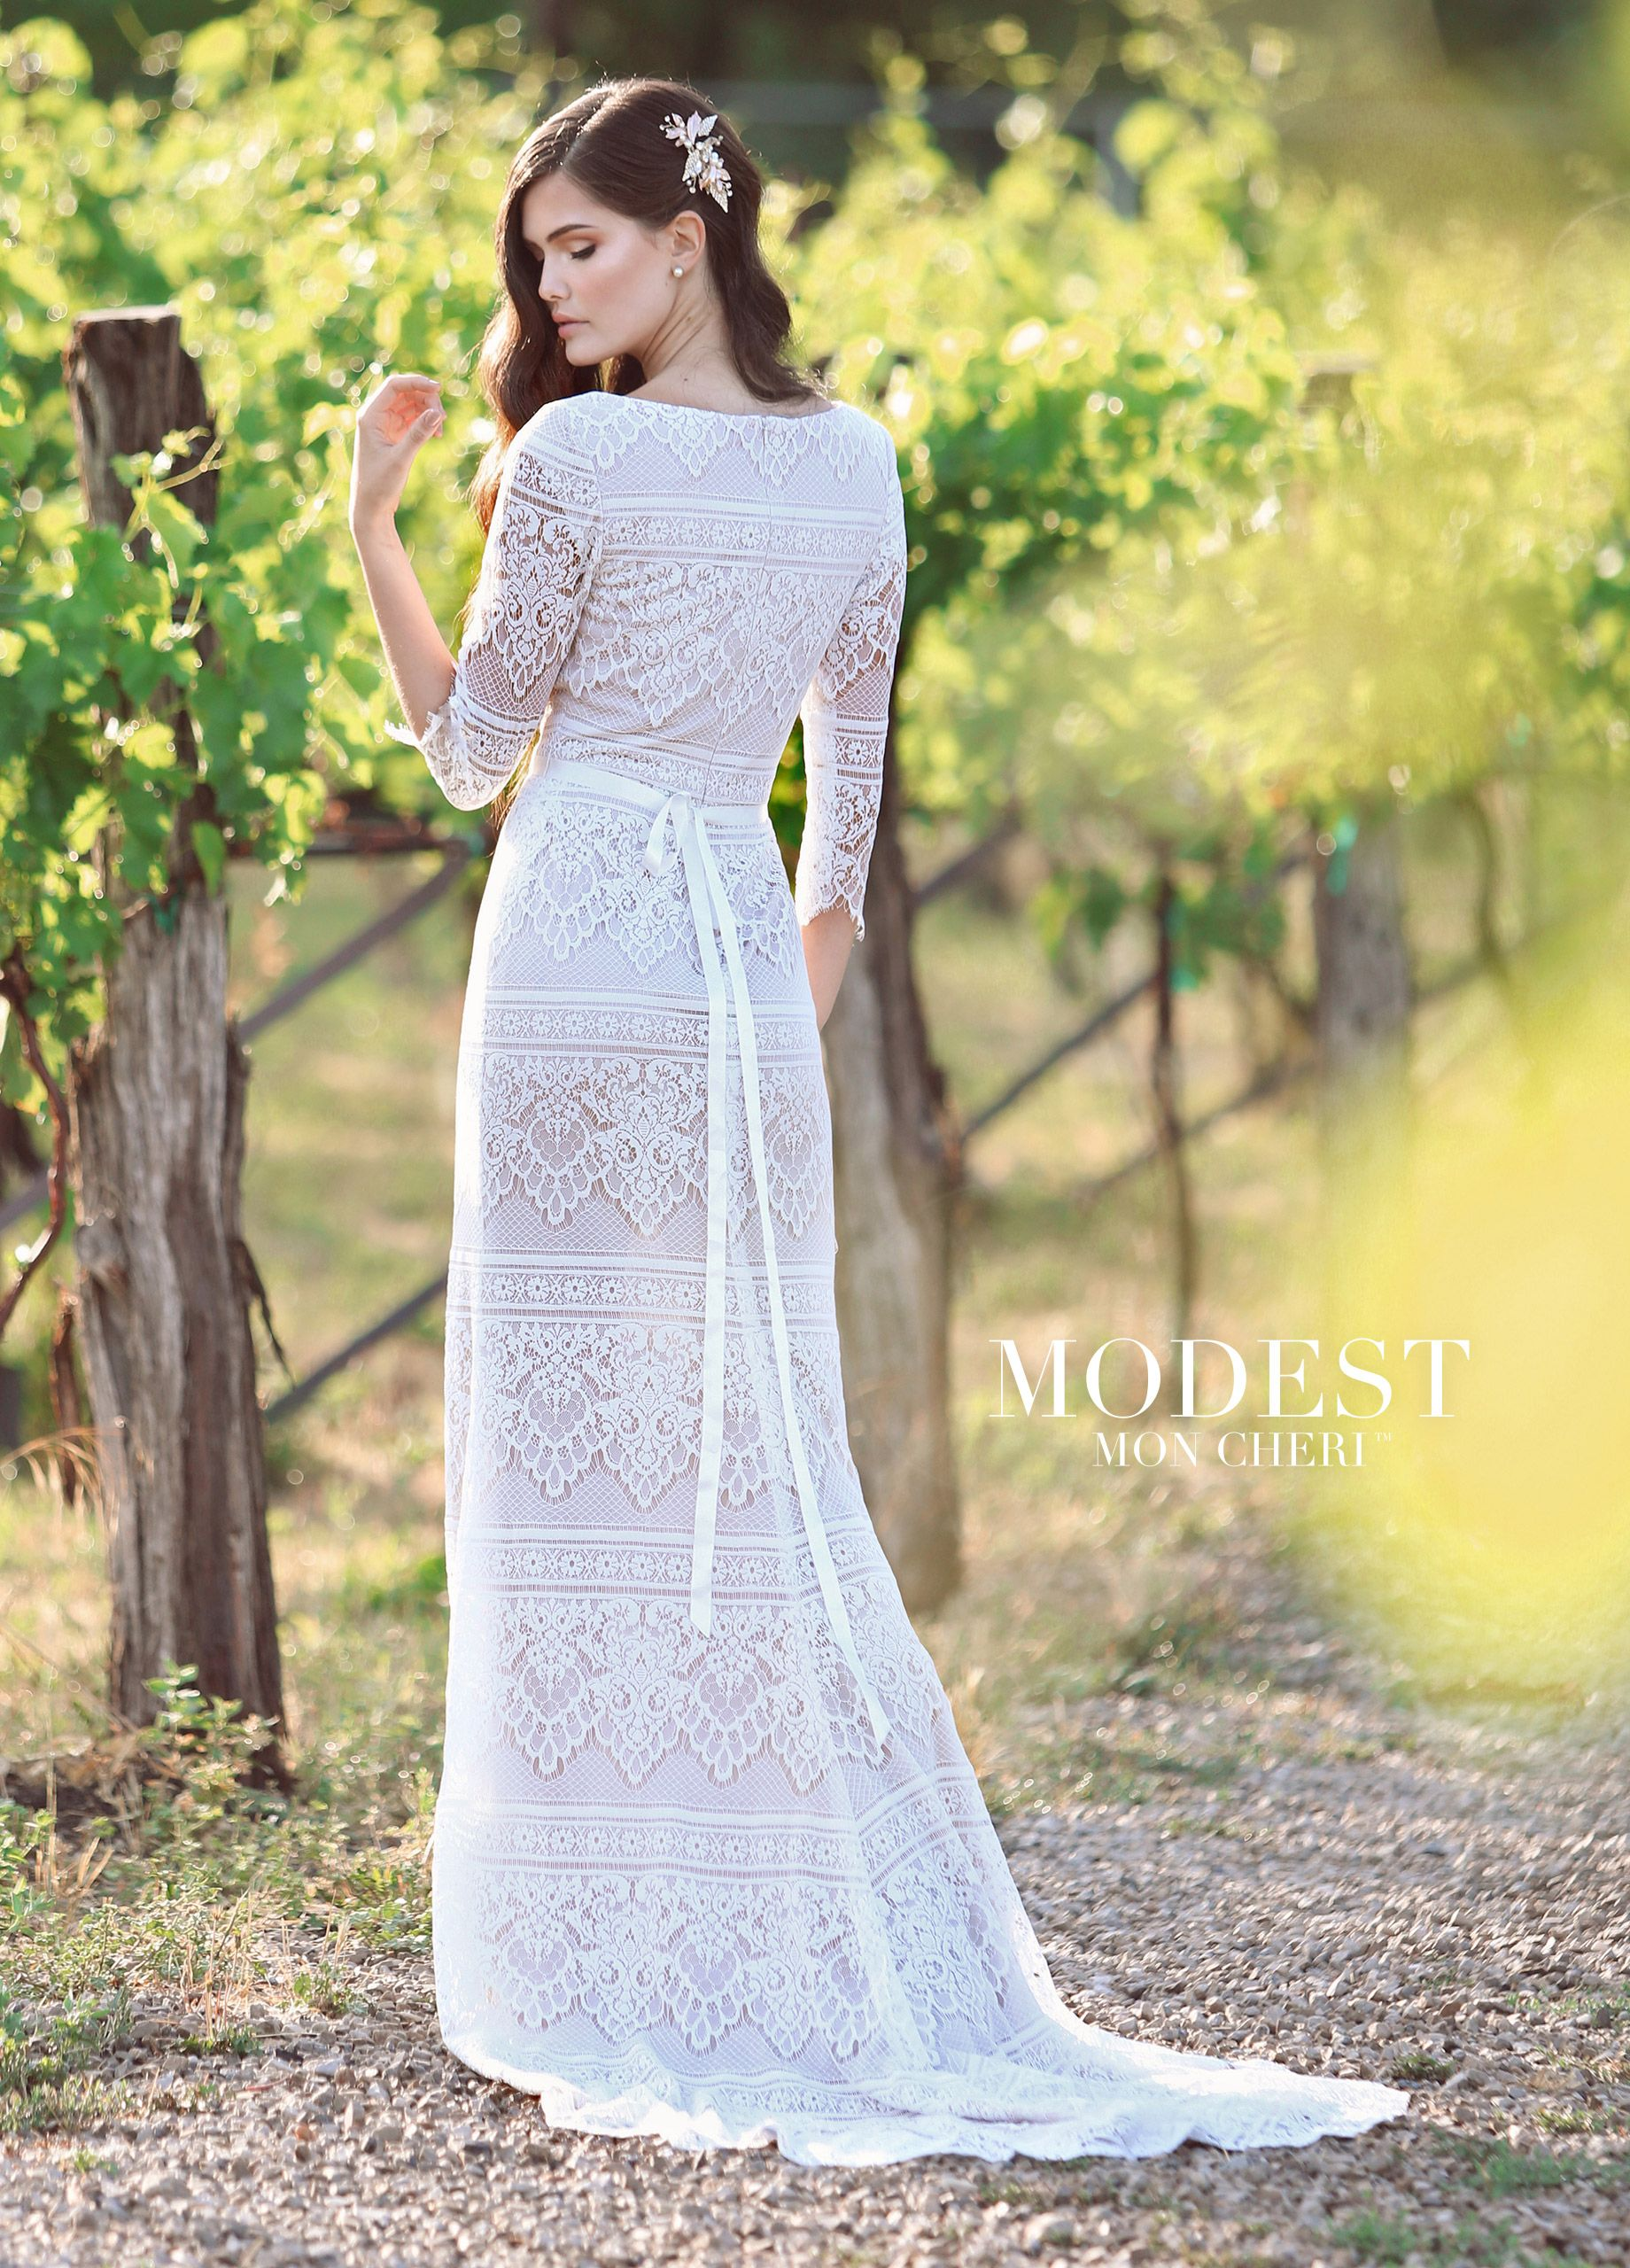 Embroidered lace wedding dress  Modest ThreeQuarter Sleeved Embroidered Lace Wedding Dress  Modest